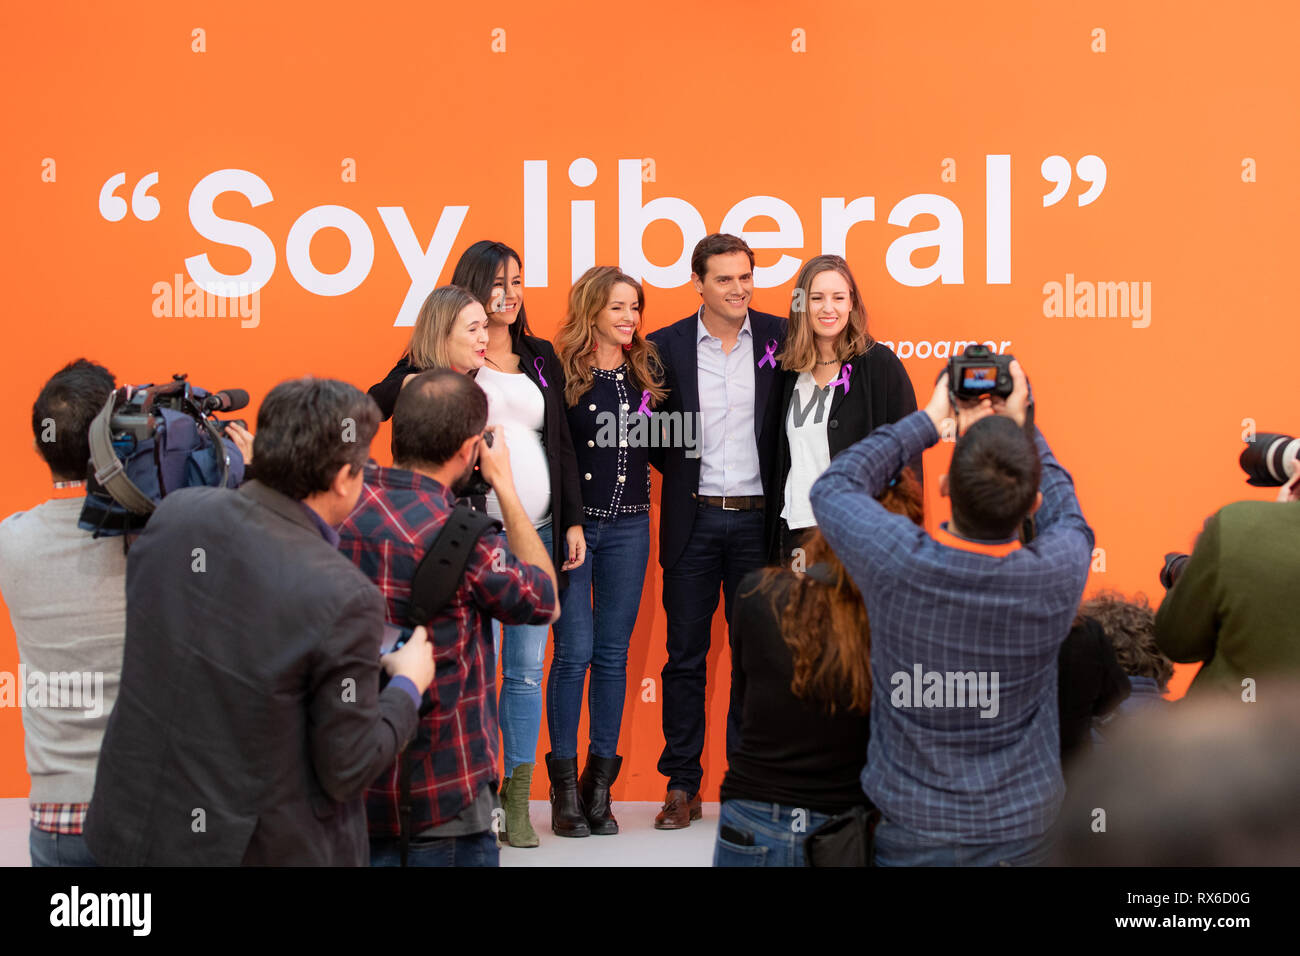 March 8, 2019 - Madrid, Spain - The president of Ciudadanos (Cs), Albert Rivera, accompanied by the head of the Women and LGTBI Area of ''‹''‹the formation, Patricia Reyes (3L); the Secretary of Youth of Cs, Melisa RodrÃ-guez (R); the candidate for mayor of Madrid and spokesperson for Cs Madrid, Begoña VillacÃ-s (2L); and the culture spokesperson of the party, Marta Rivera (1L) makes an institutional declaration on the occasion of Women's Day. In addition, you will discover a quote by Clara Campoamor written on one of the walls of the headquarters. (Credit Image: © Jesus Hellin/ZUMA Wire) - Stock Image